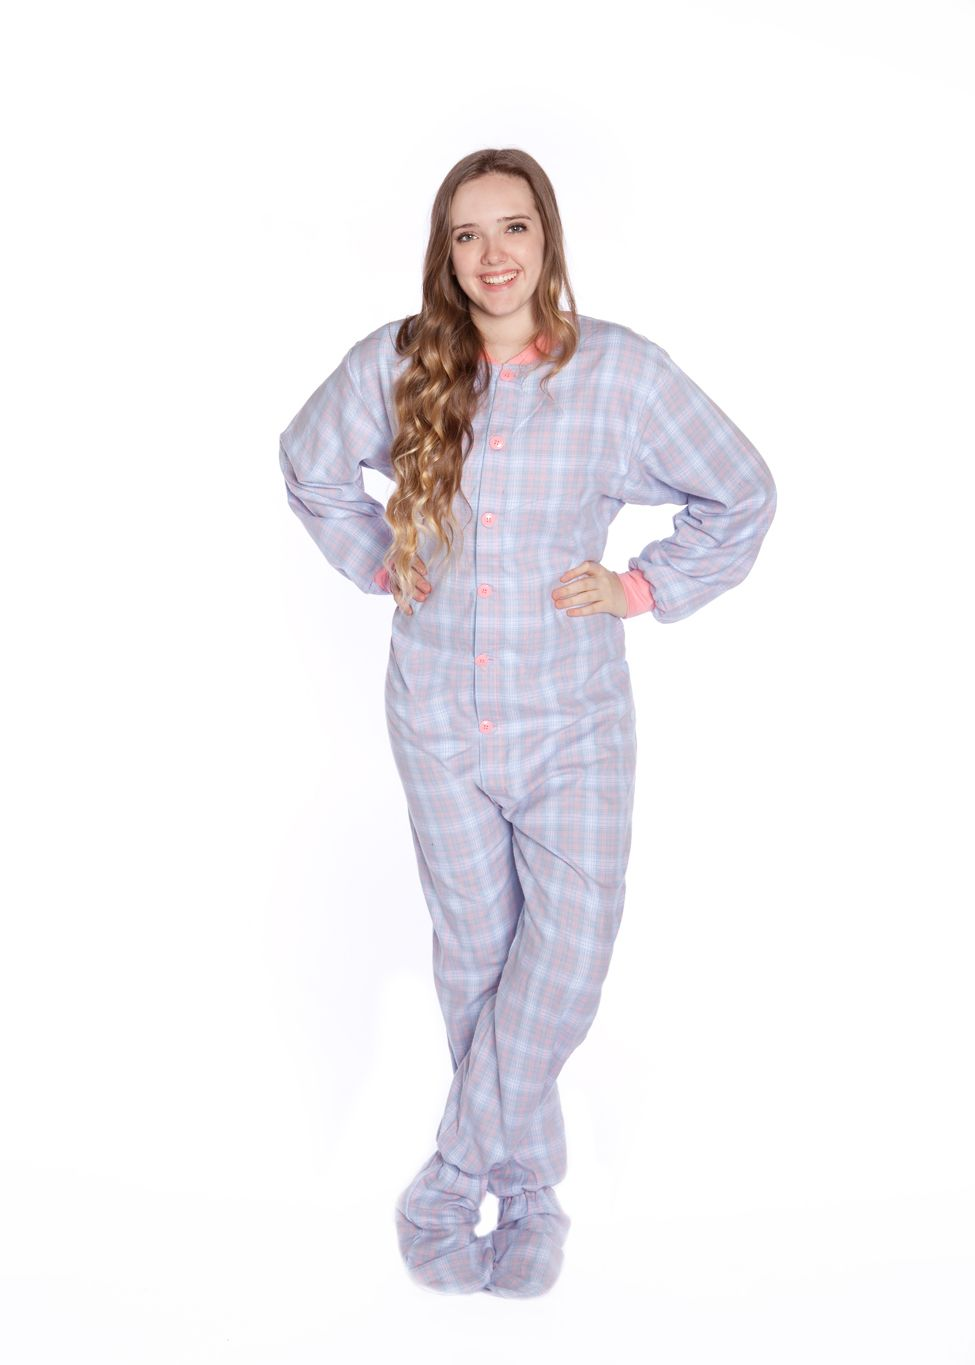 6a8ce351de Big Feet Adult Footie Pajamas 108 Baby Blue   Pink Plaid for Men or Women  100% Double Brushed Cotton Flannel available with butt flap or without the  butt ...